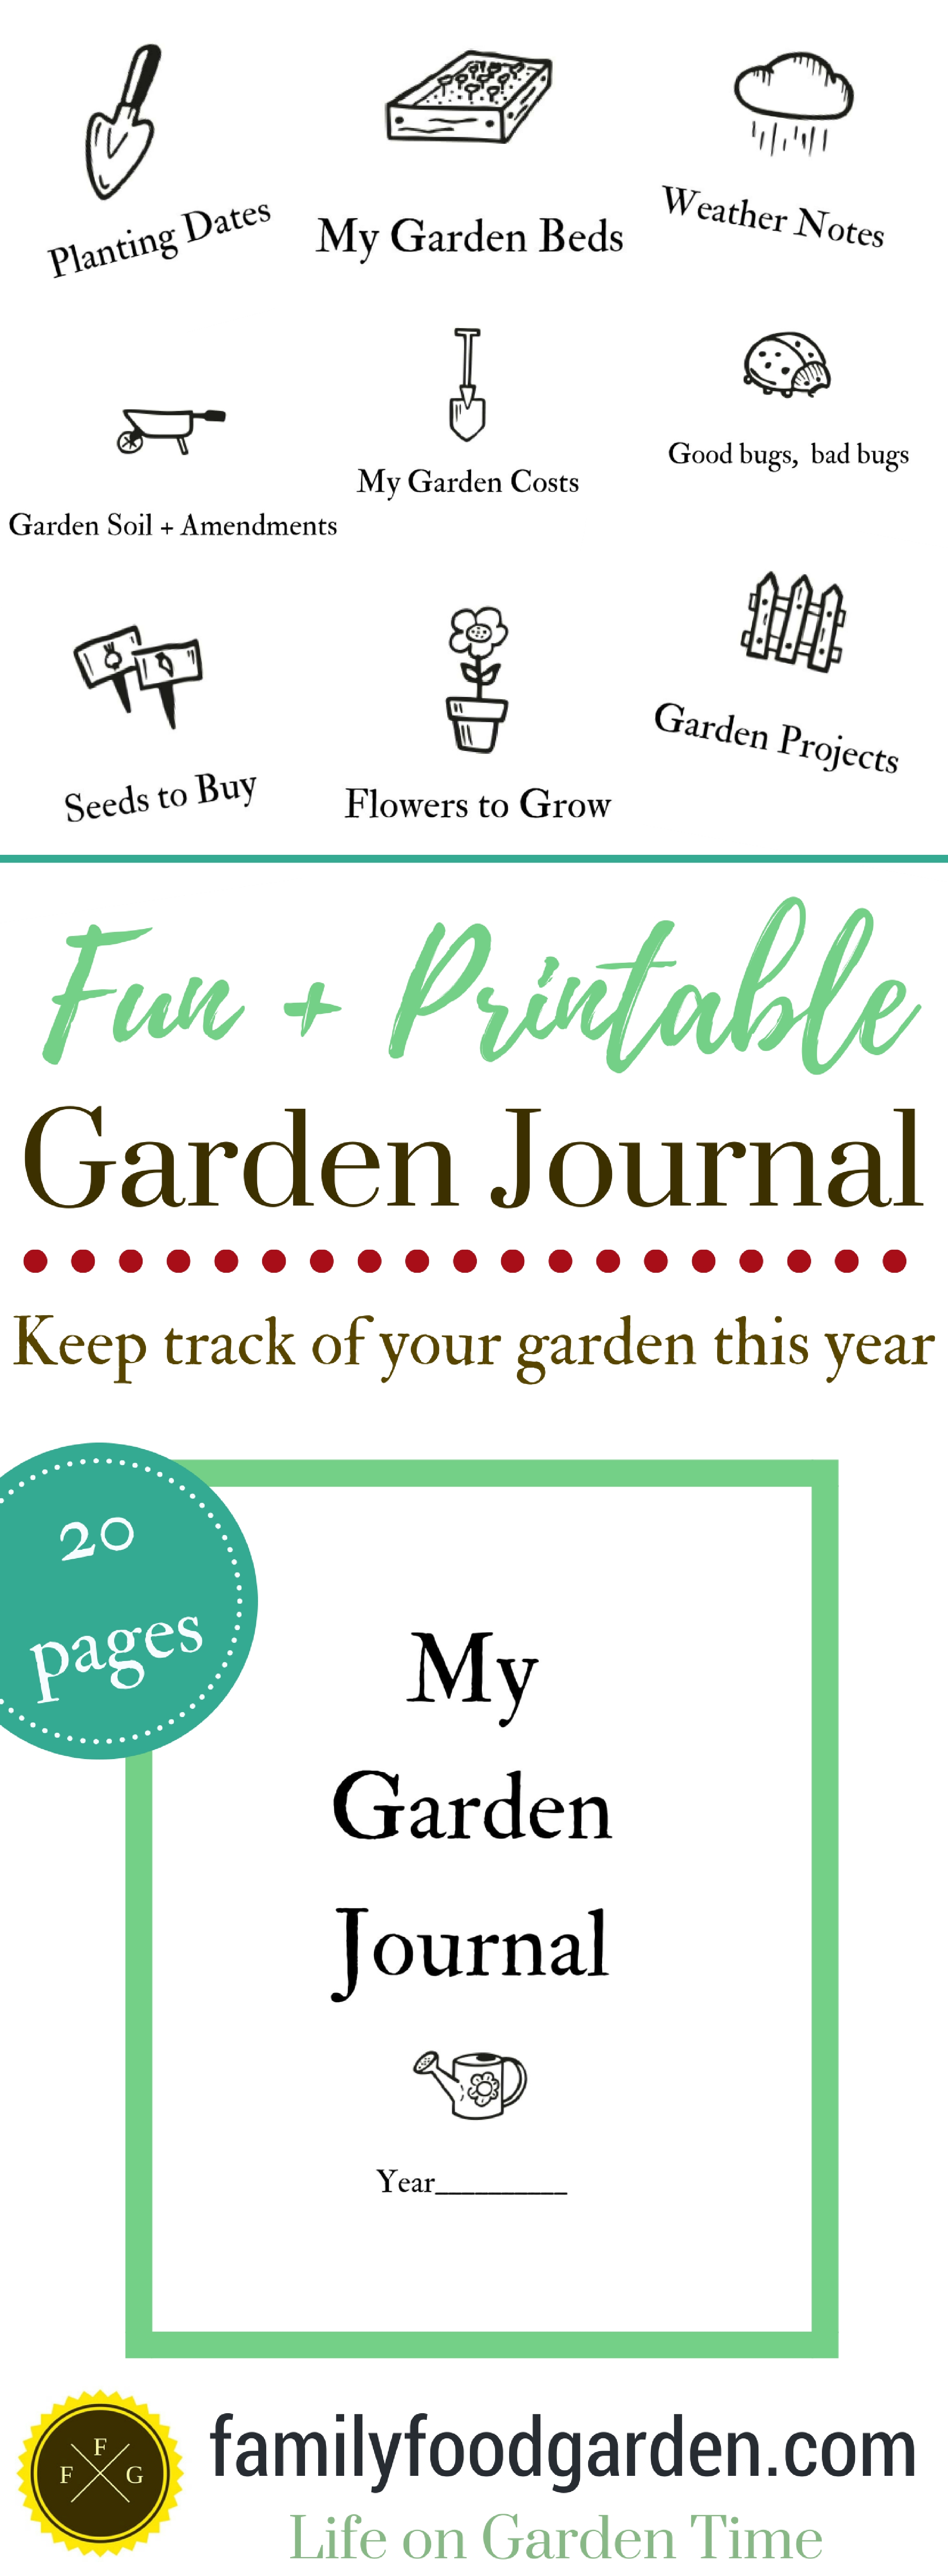 photo relating to Printable Garden Journal identify Backyard garden Magazine for your Vegetable Back garden Household Food items Backyard